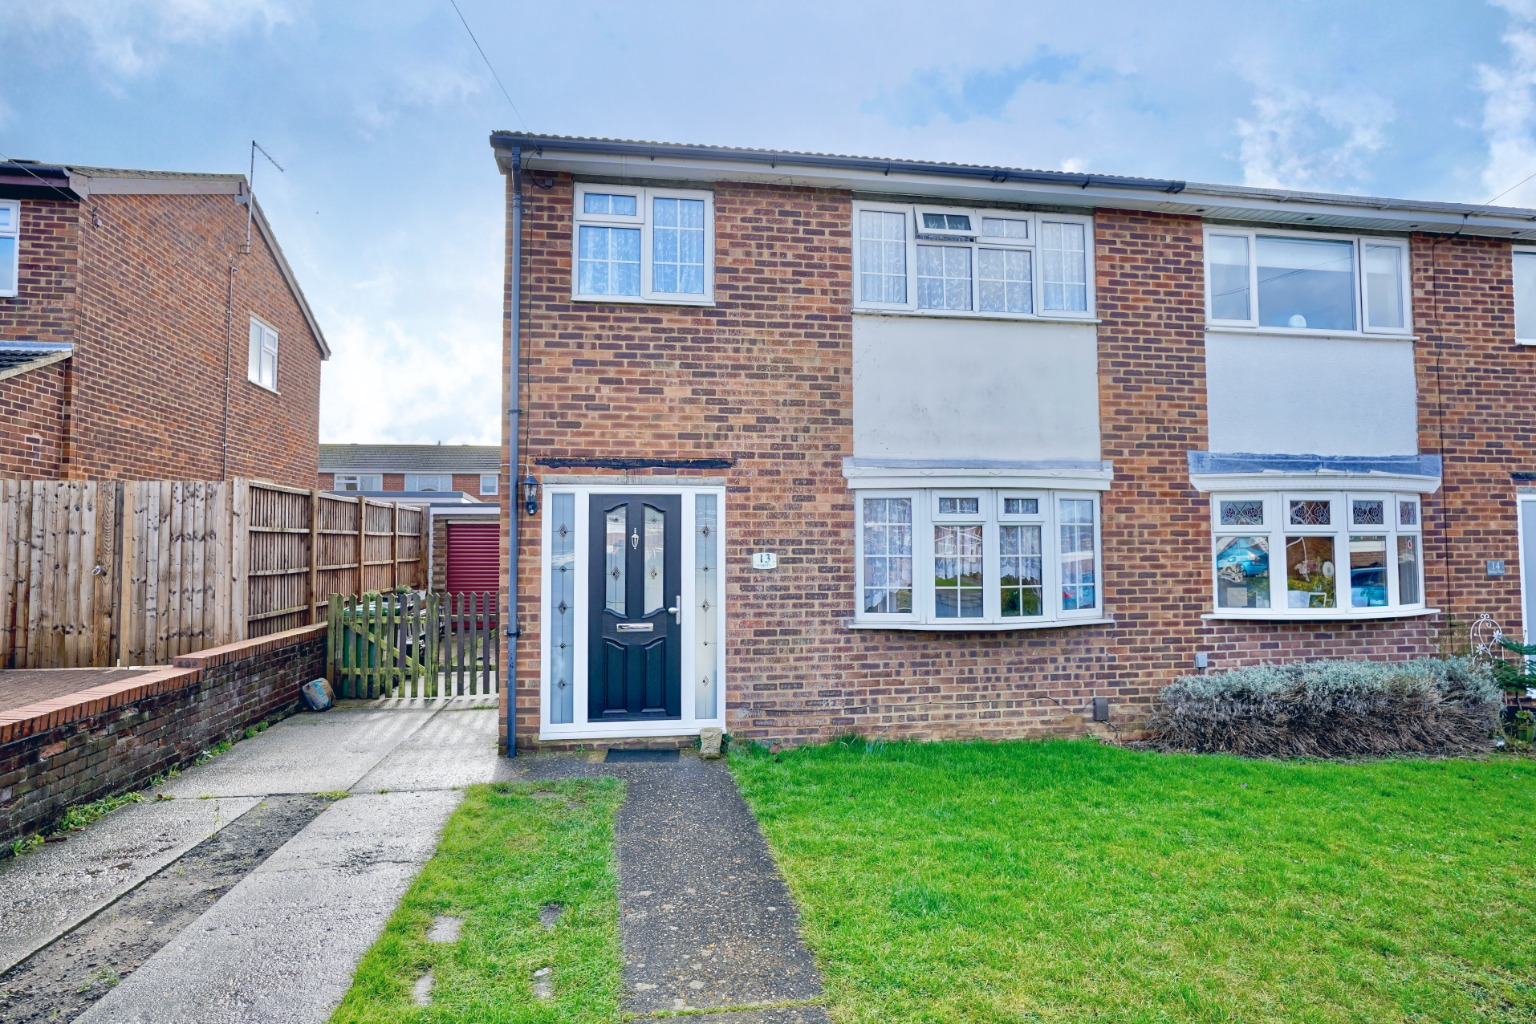 3 bed semi-detached house for sale in George Place, St. Neots - Property Image 1